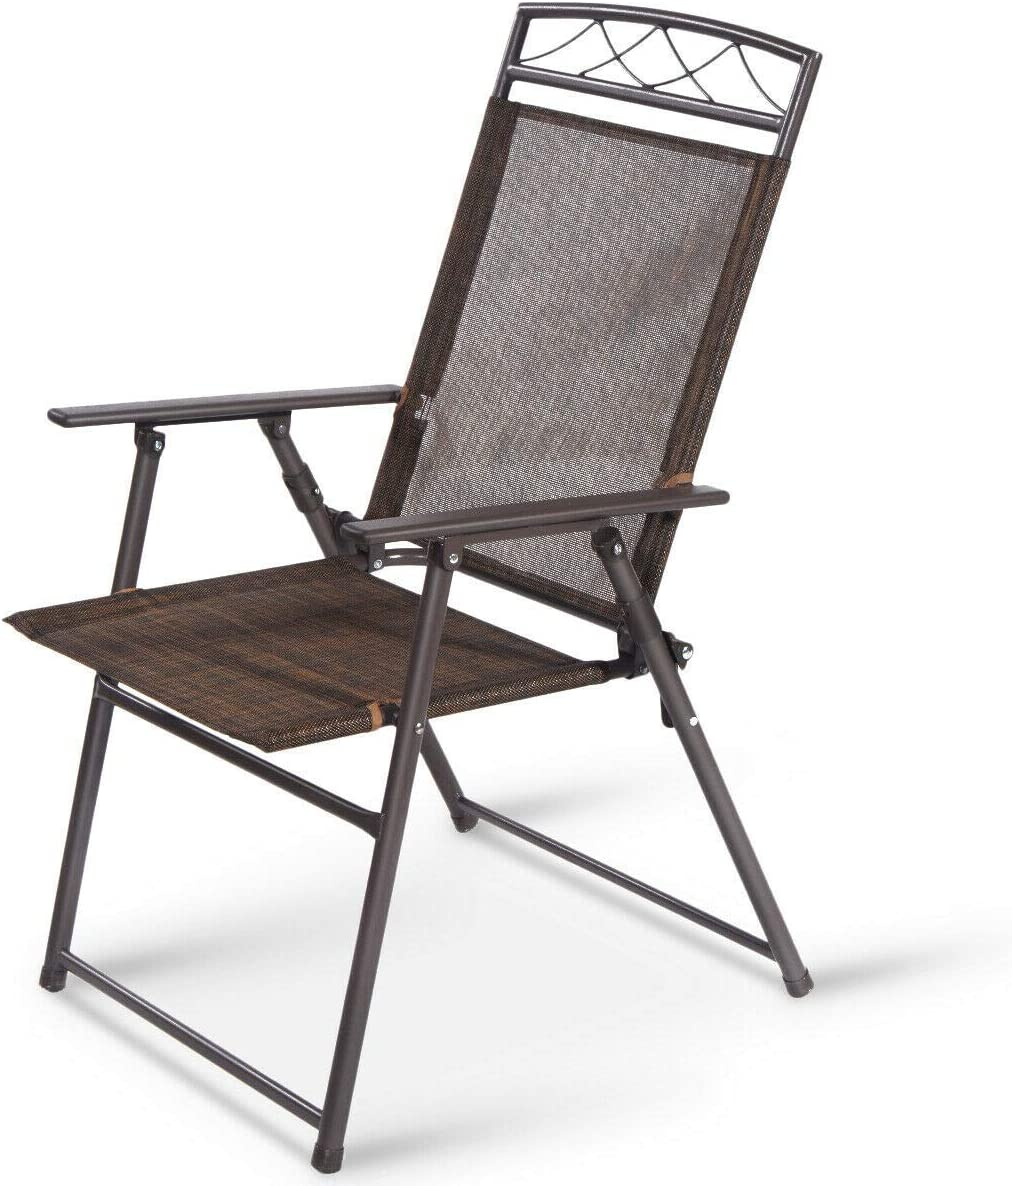 SPSUPE Set of 4 Outdoor Patio Folding Chairs, Steel Camping Chairs, Ideal for Deck, Garden, Pool, Backyard, Coffee